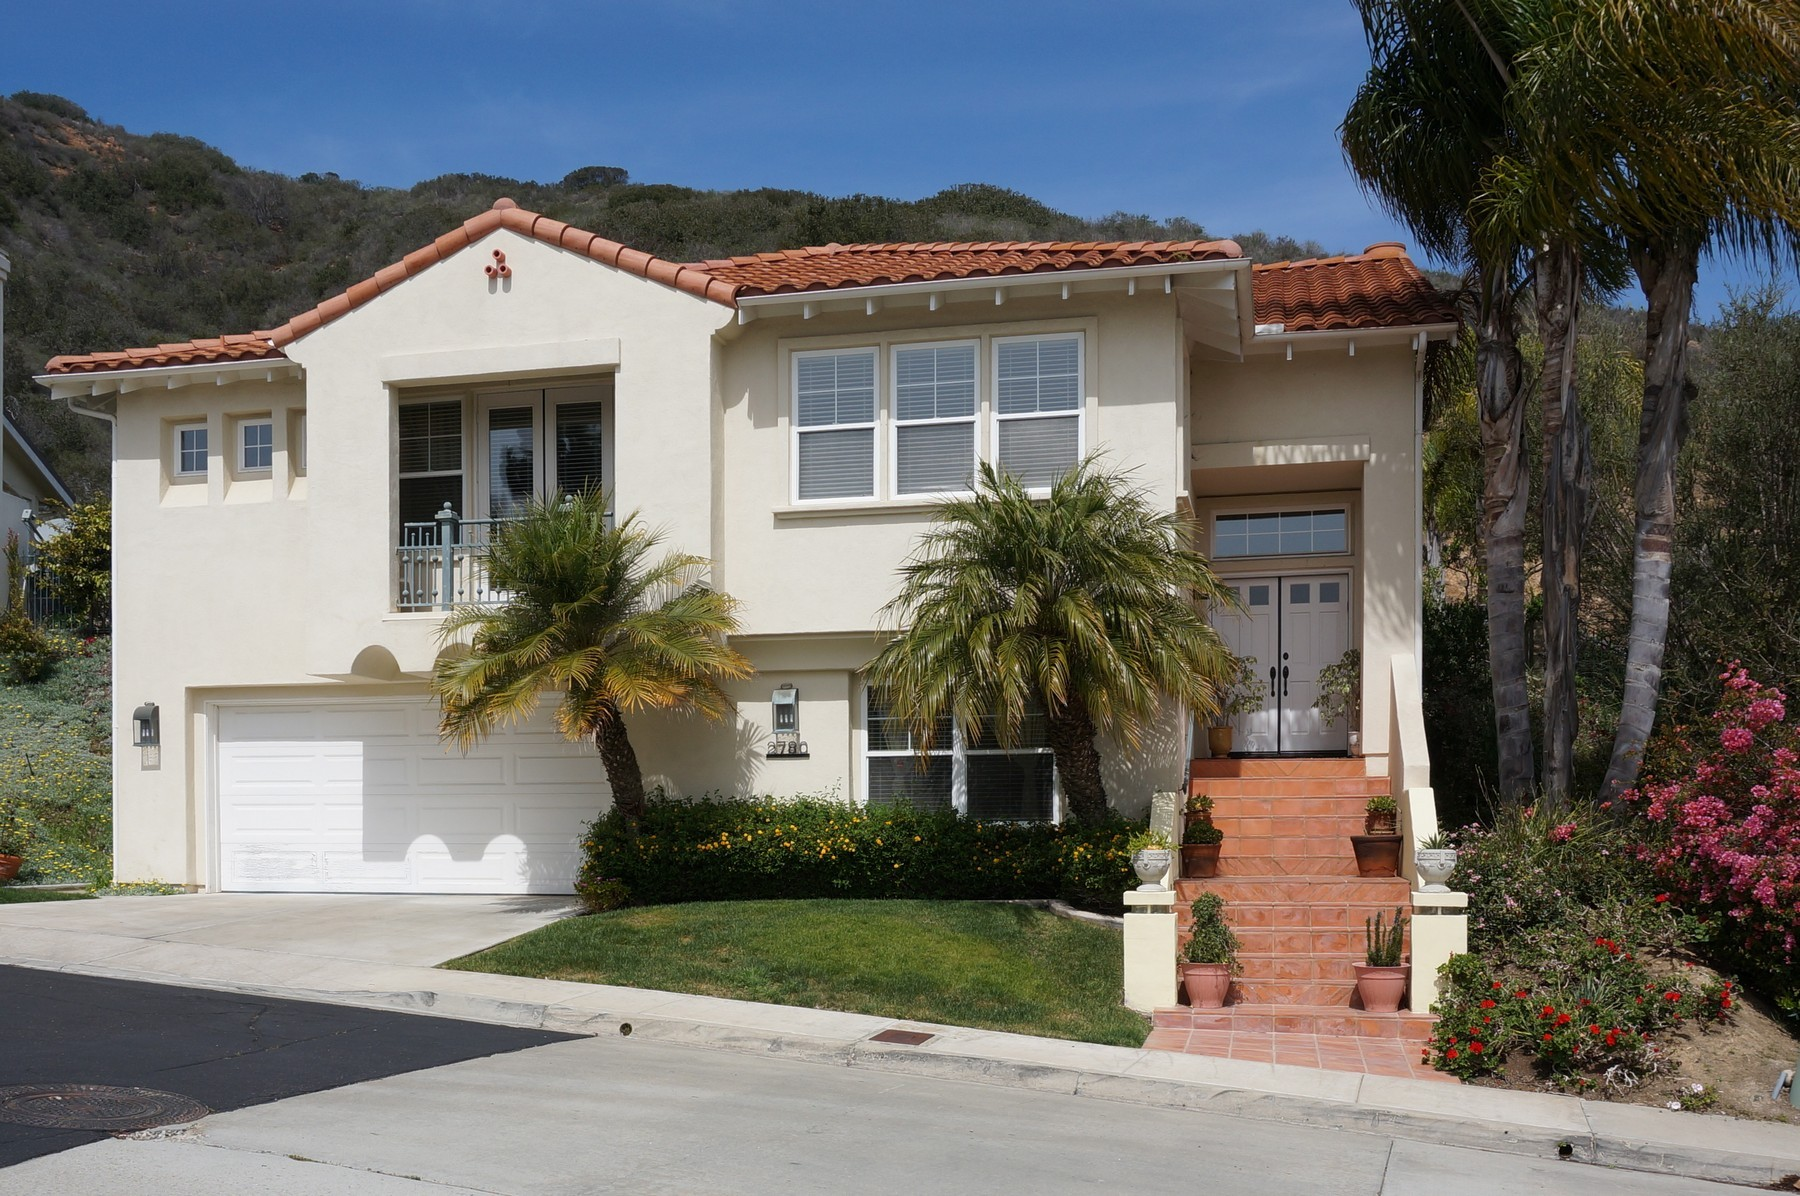 2780 Carriagedale Row San Diego Ca 92037 4 Bedroom House For Rent For 4 150 Month Zumper